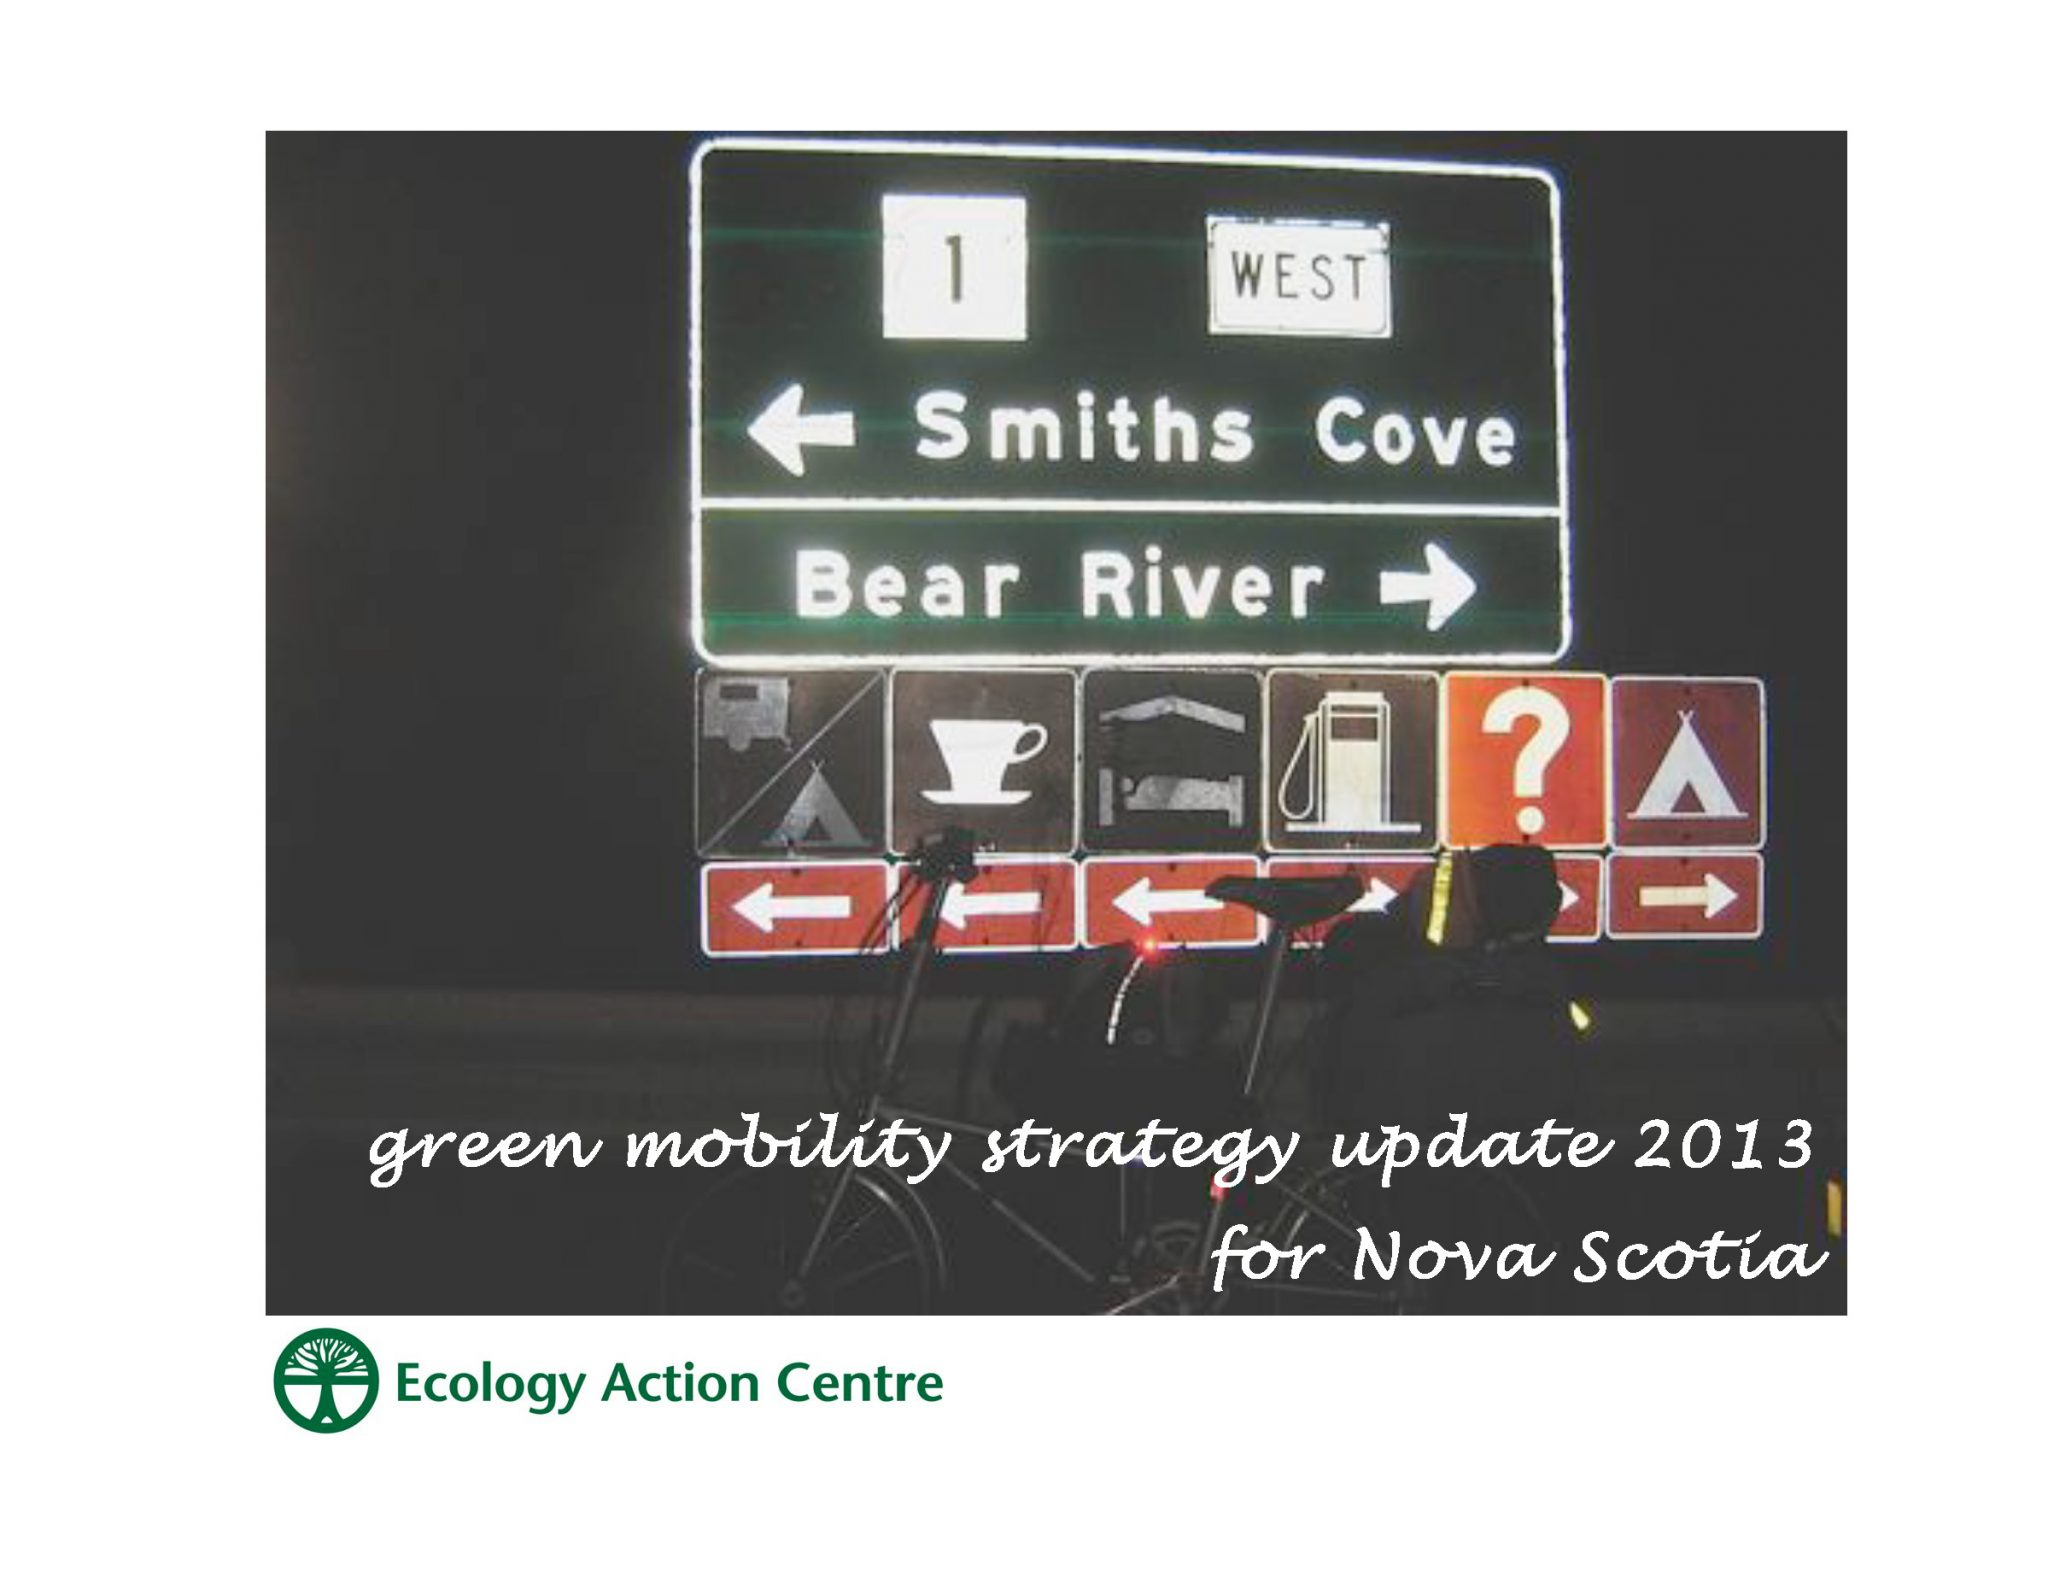 NS Sustainable Transportation Series: Green Mobility Strategy Update 2013